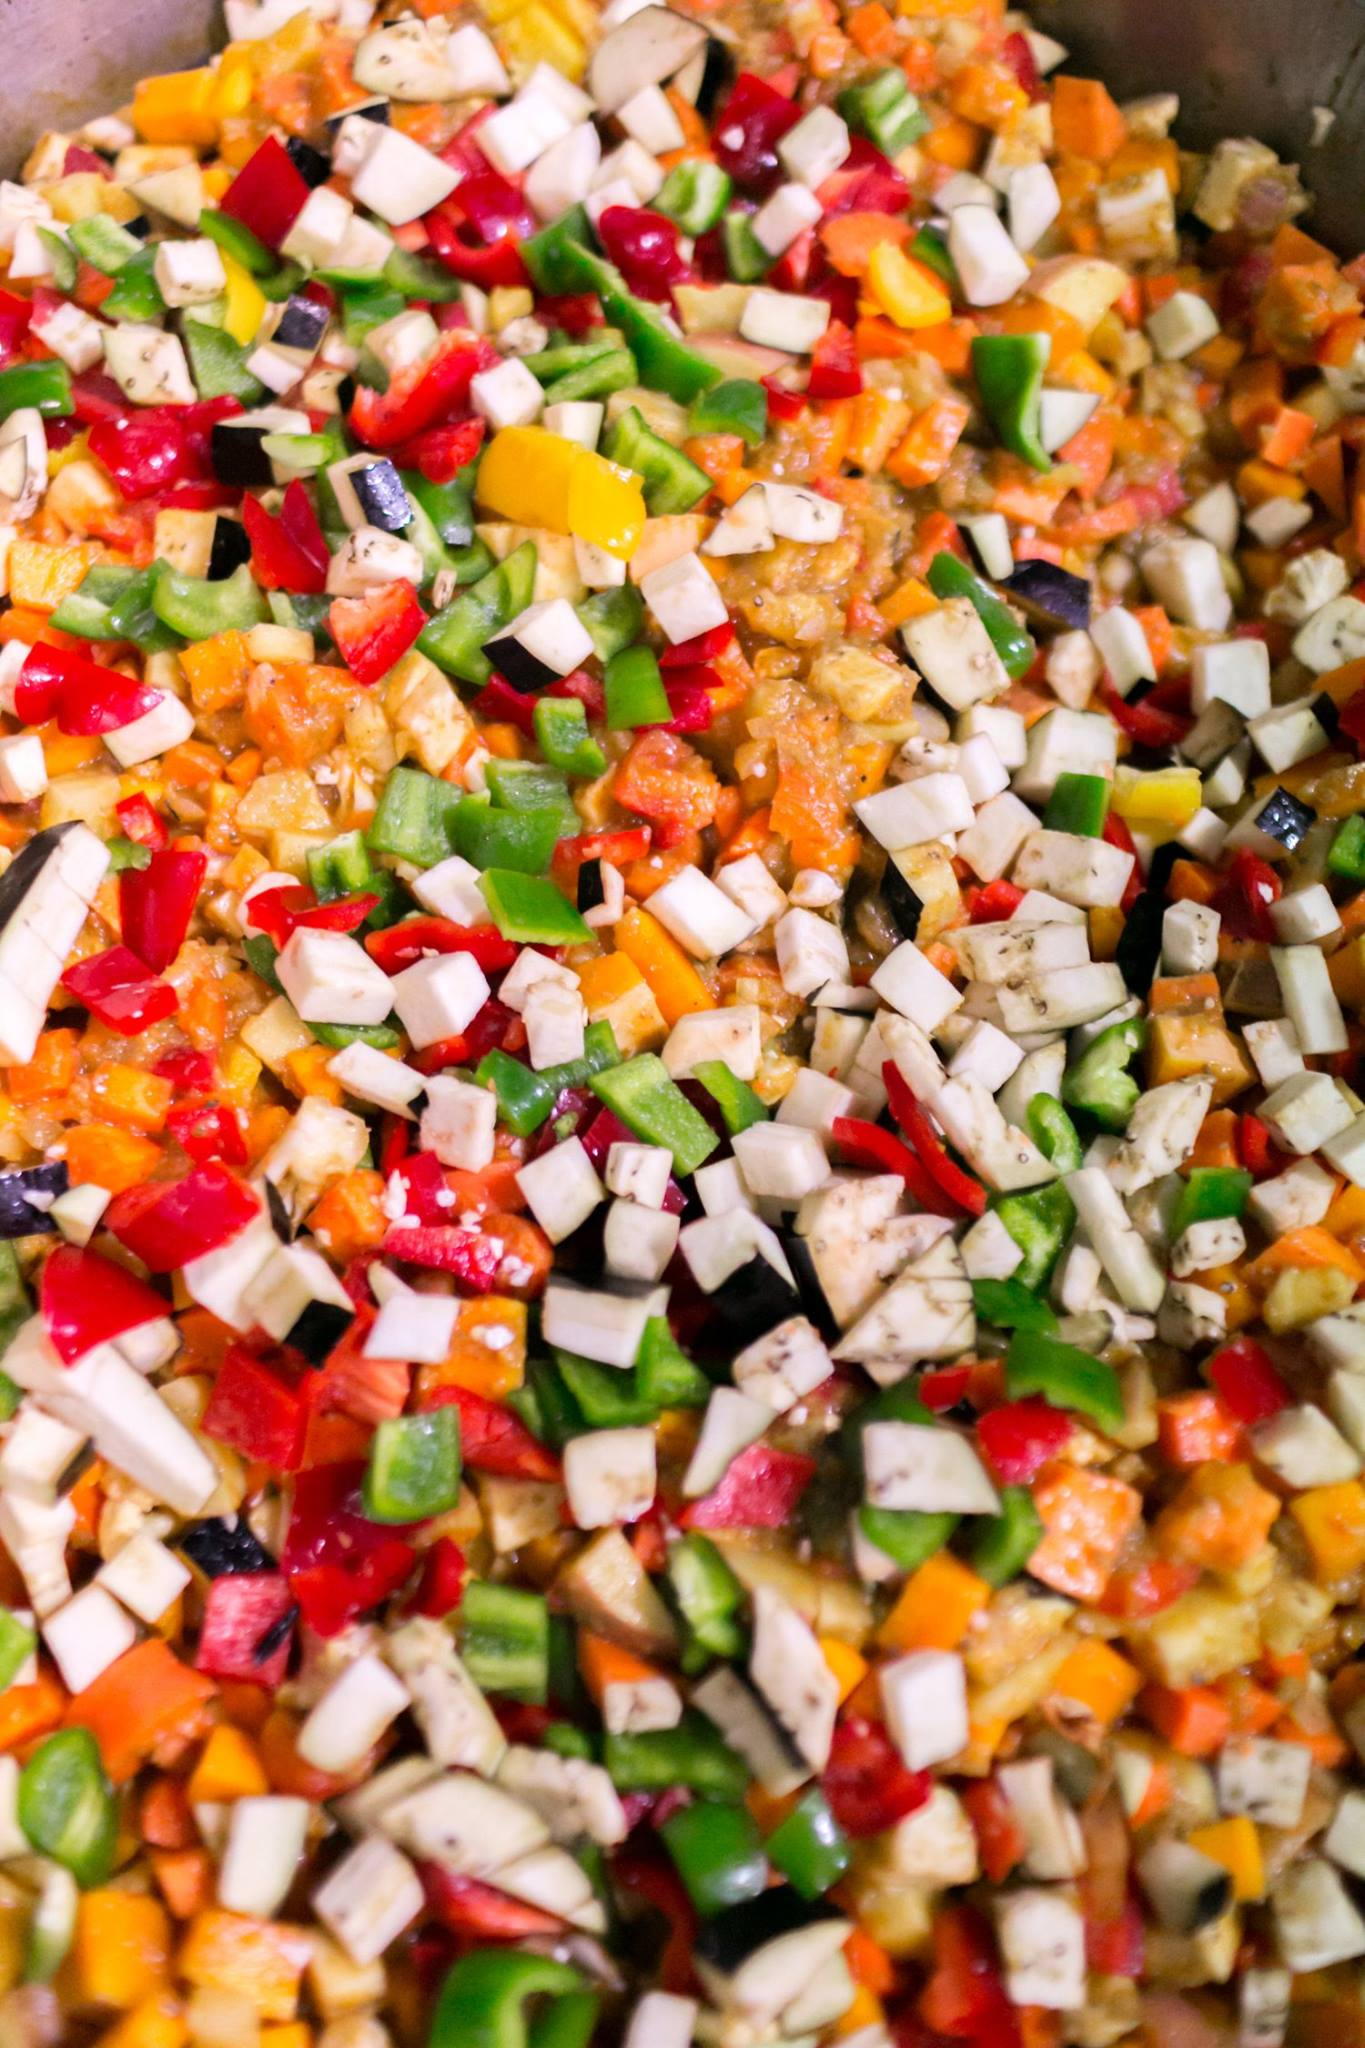 Vegetables cut up by the adult and teen volunteers, to be made into a curry